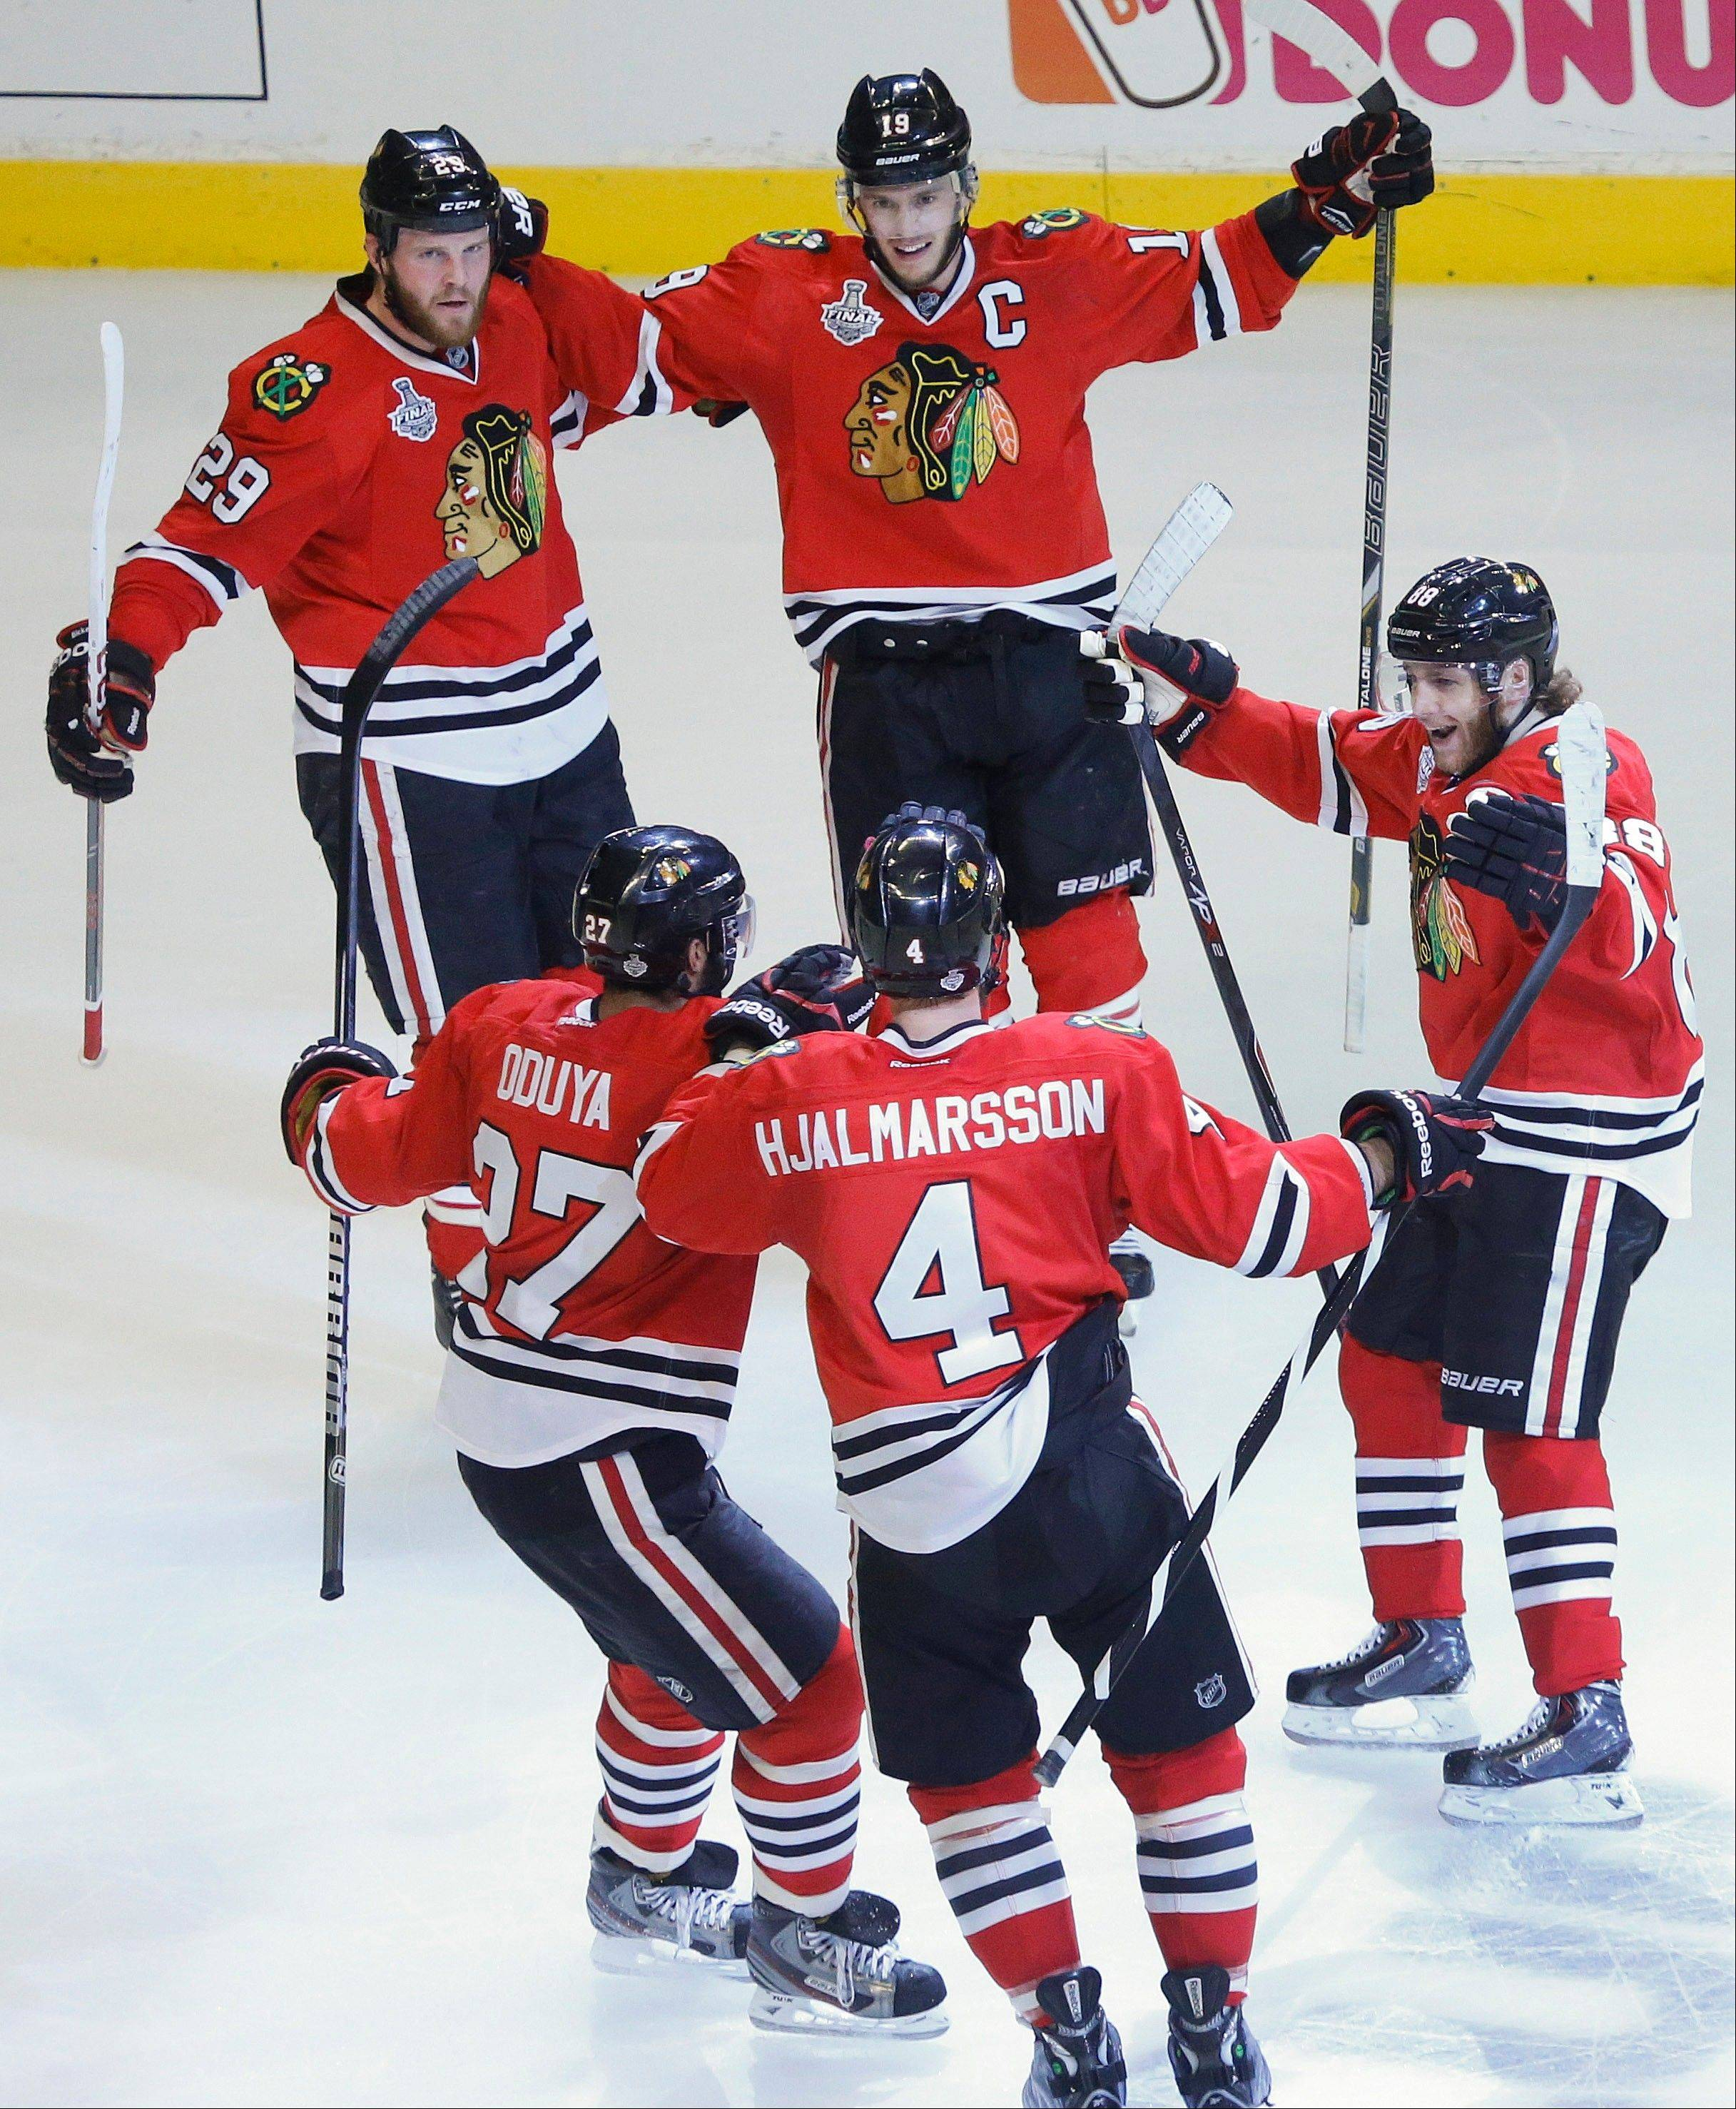 The Chicago Blackhawks celebrate a first period goal against the Boston Bruins during Game 5 of the NHL hockey Stanley Cup Finals, Saturday, June 22, 2013, in Chicago.